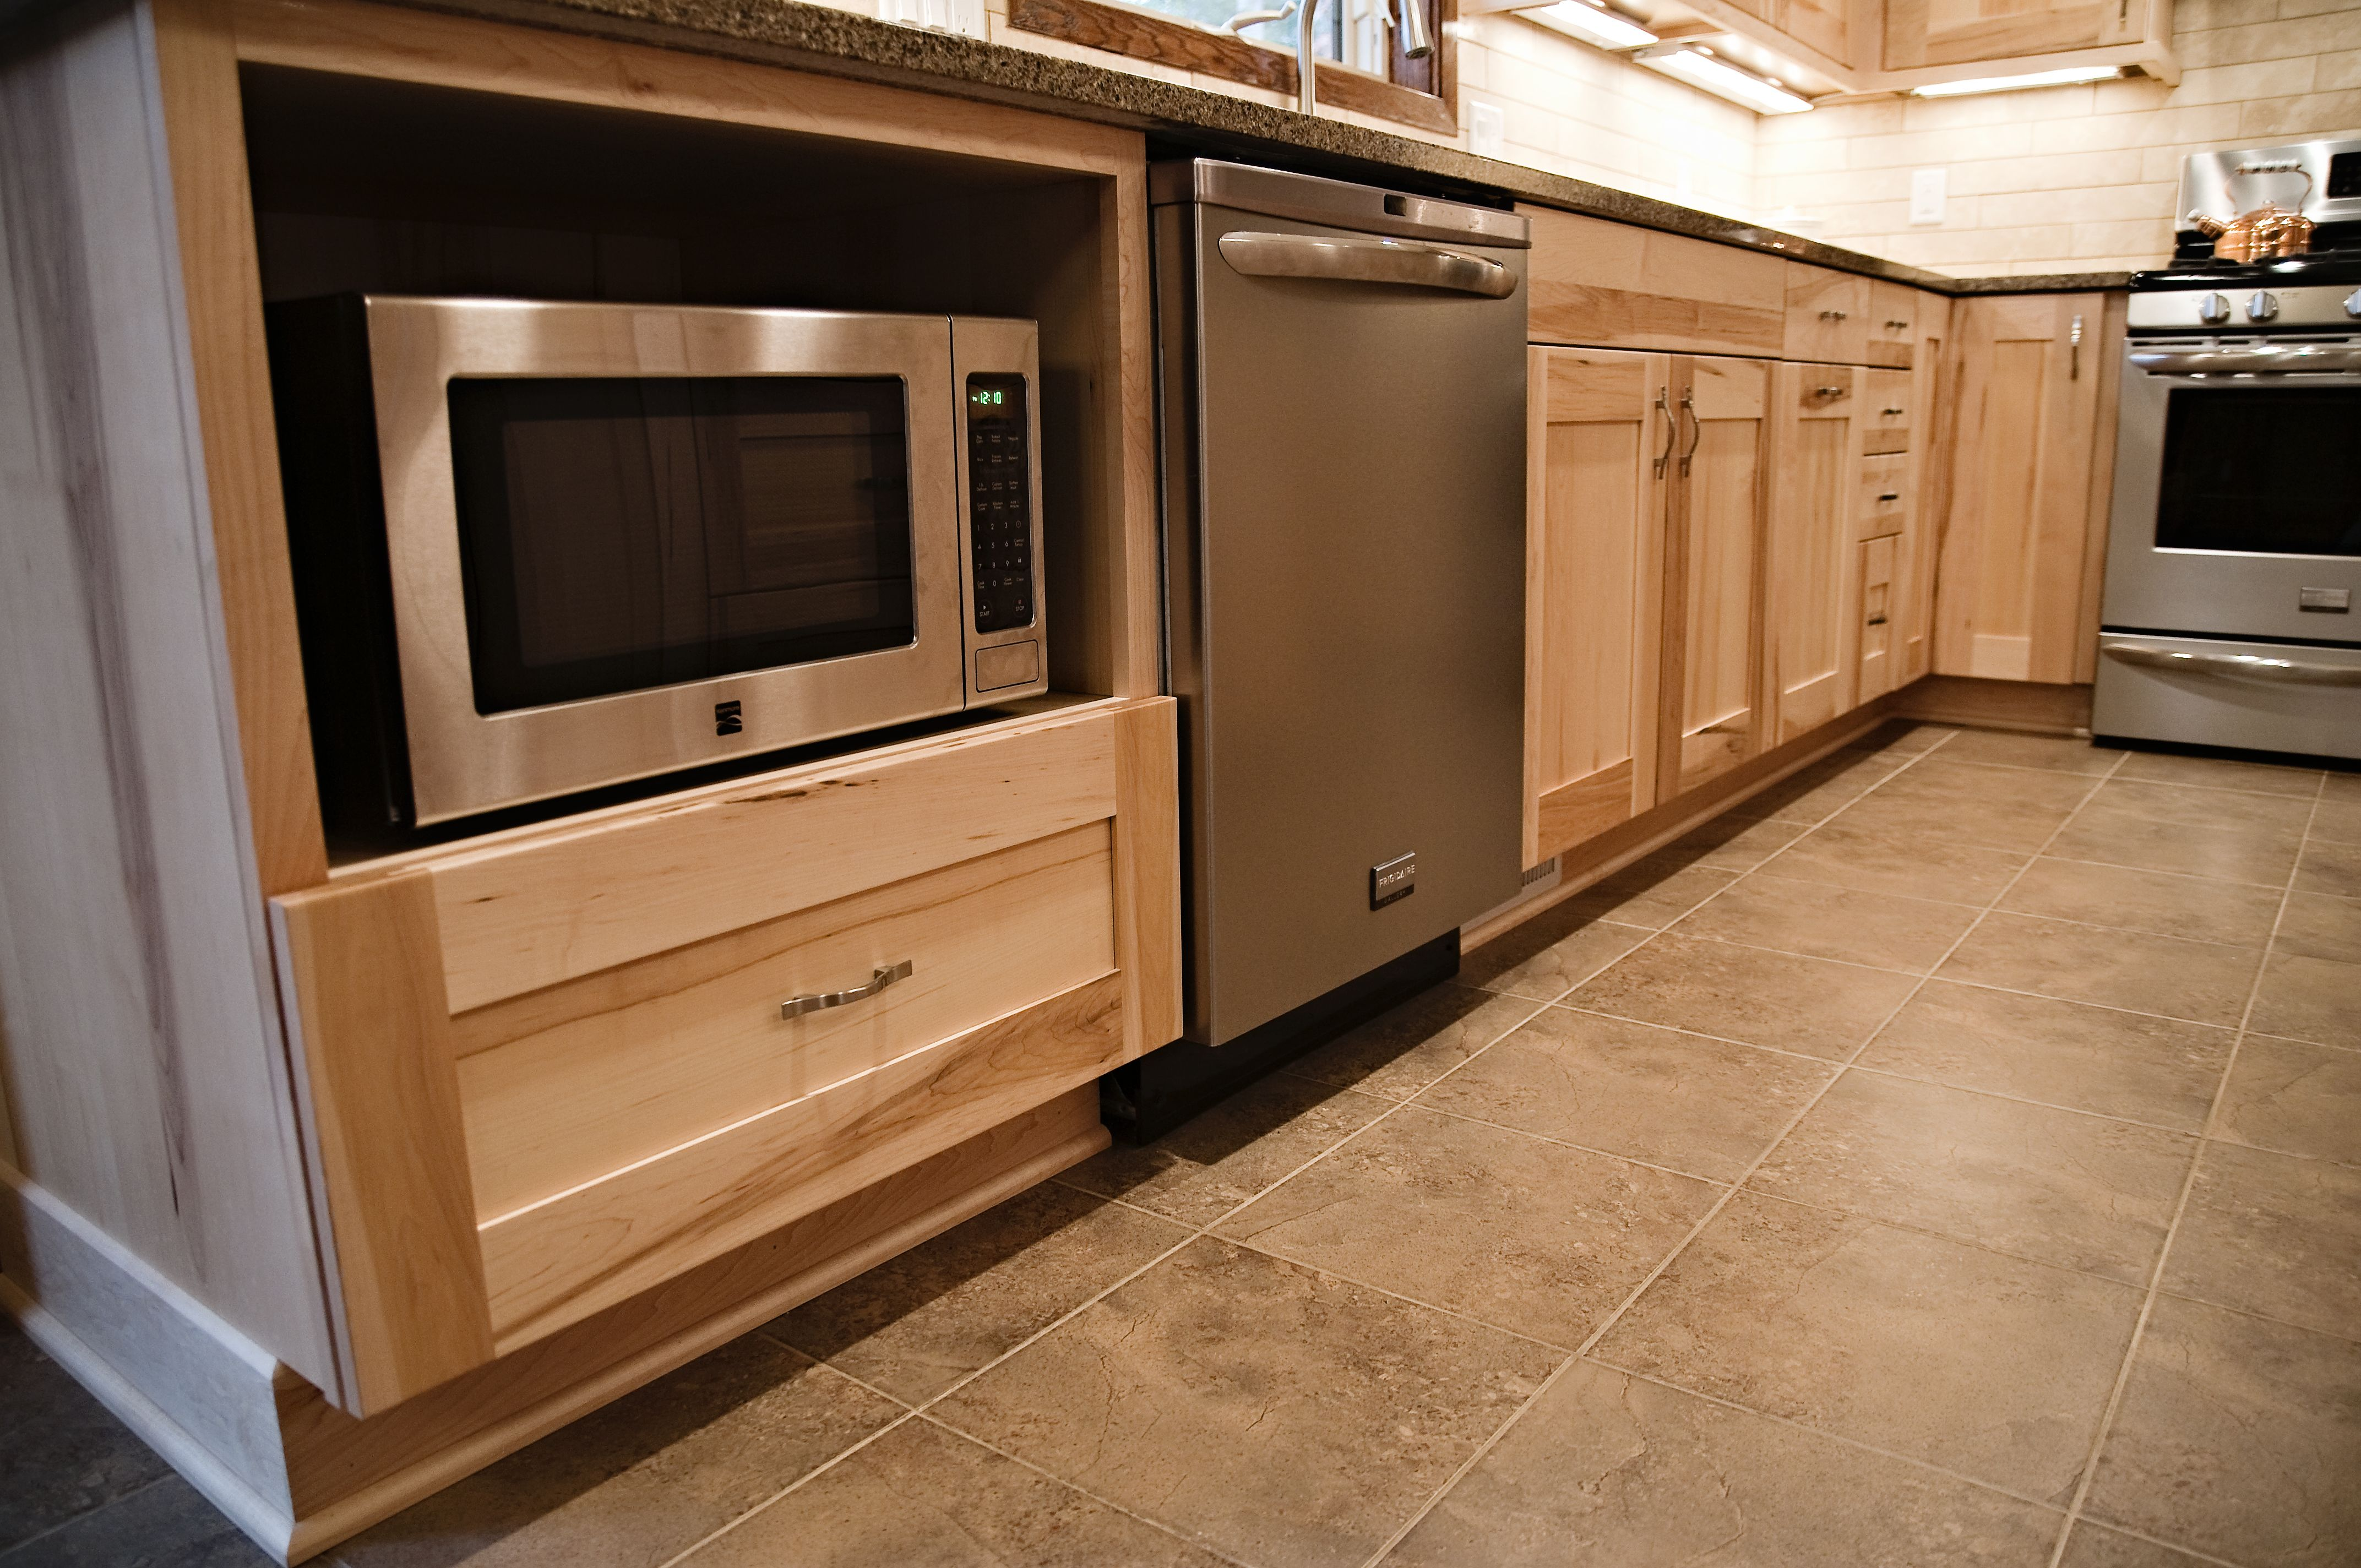 Microwave in Base Cabinet  Kitchens Design By Cella in